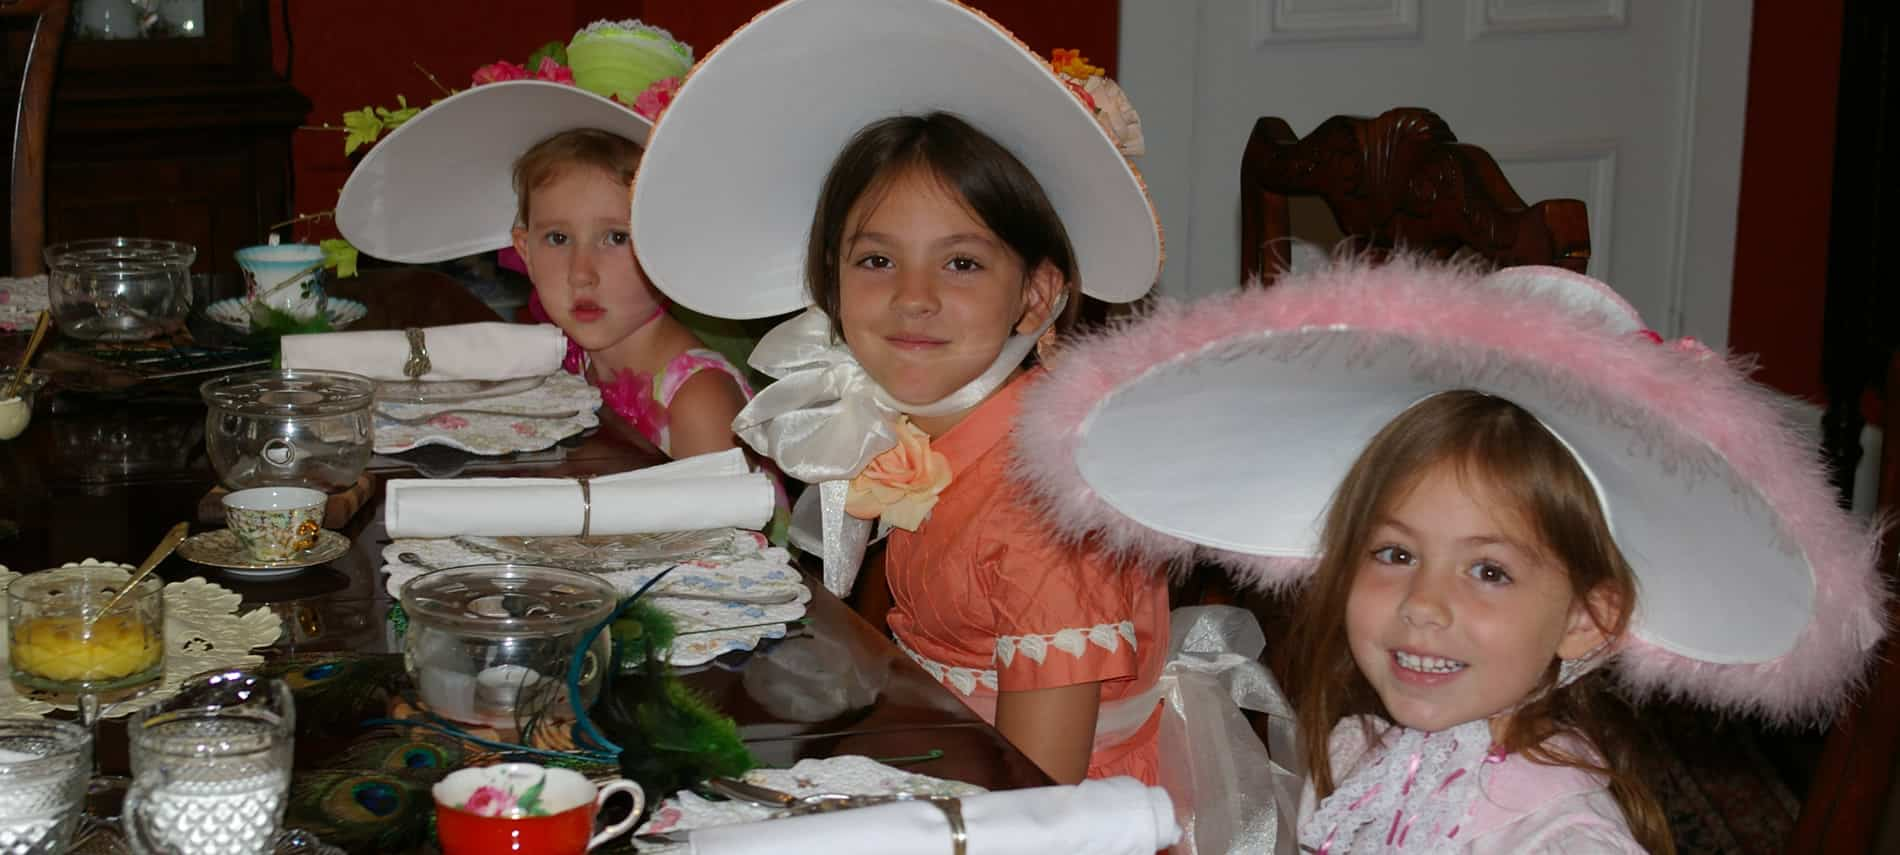 Three young girls wearing fancy dresses and large hats sitting at an elegant table set for tea